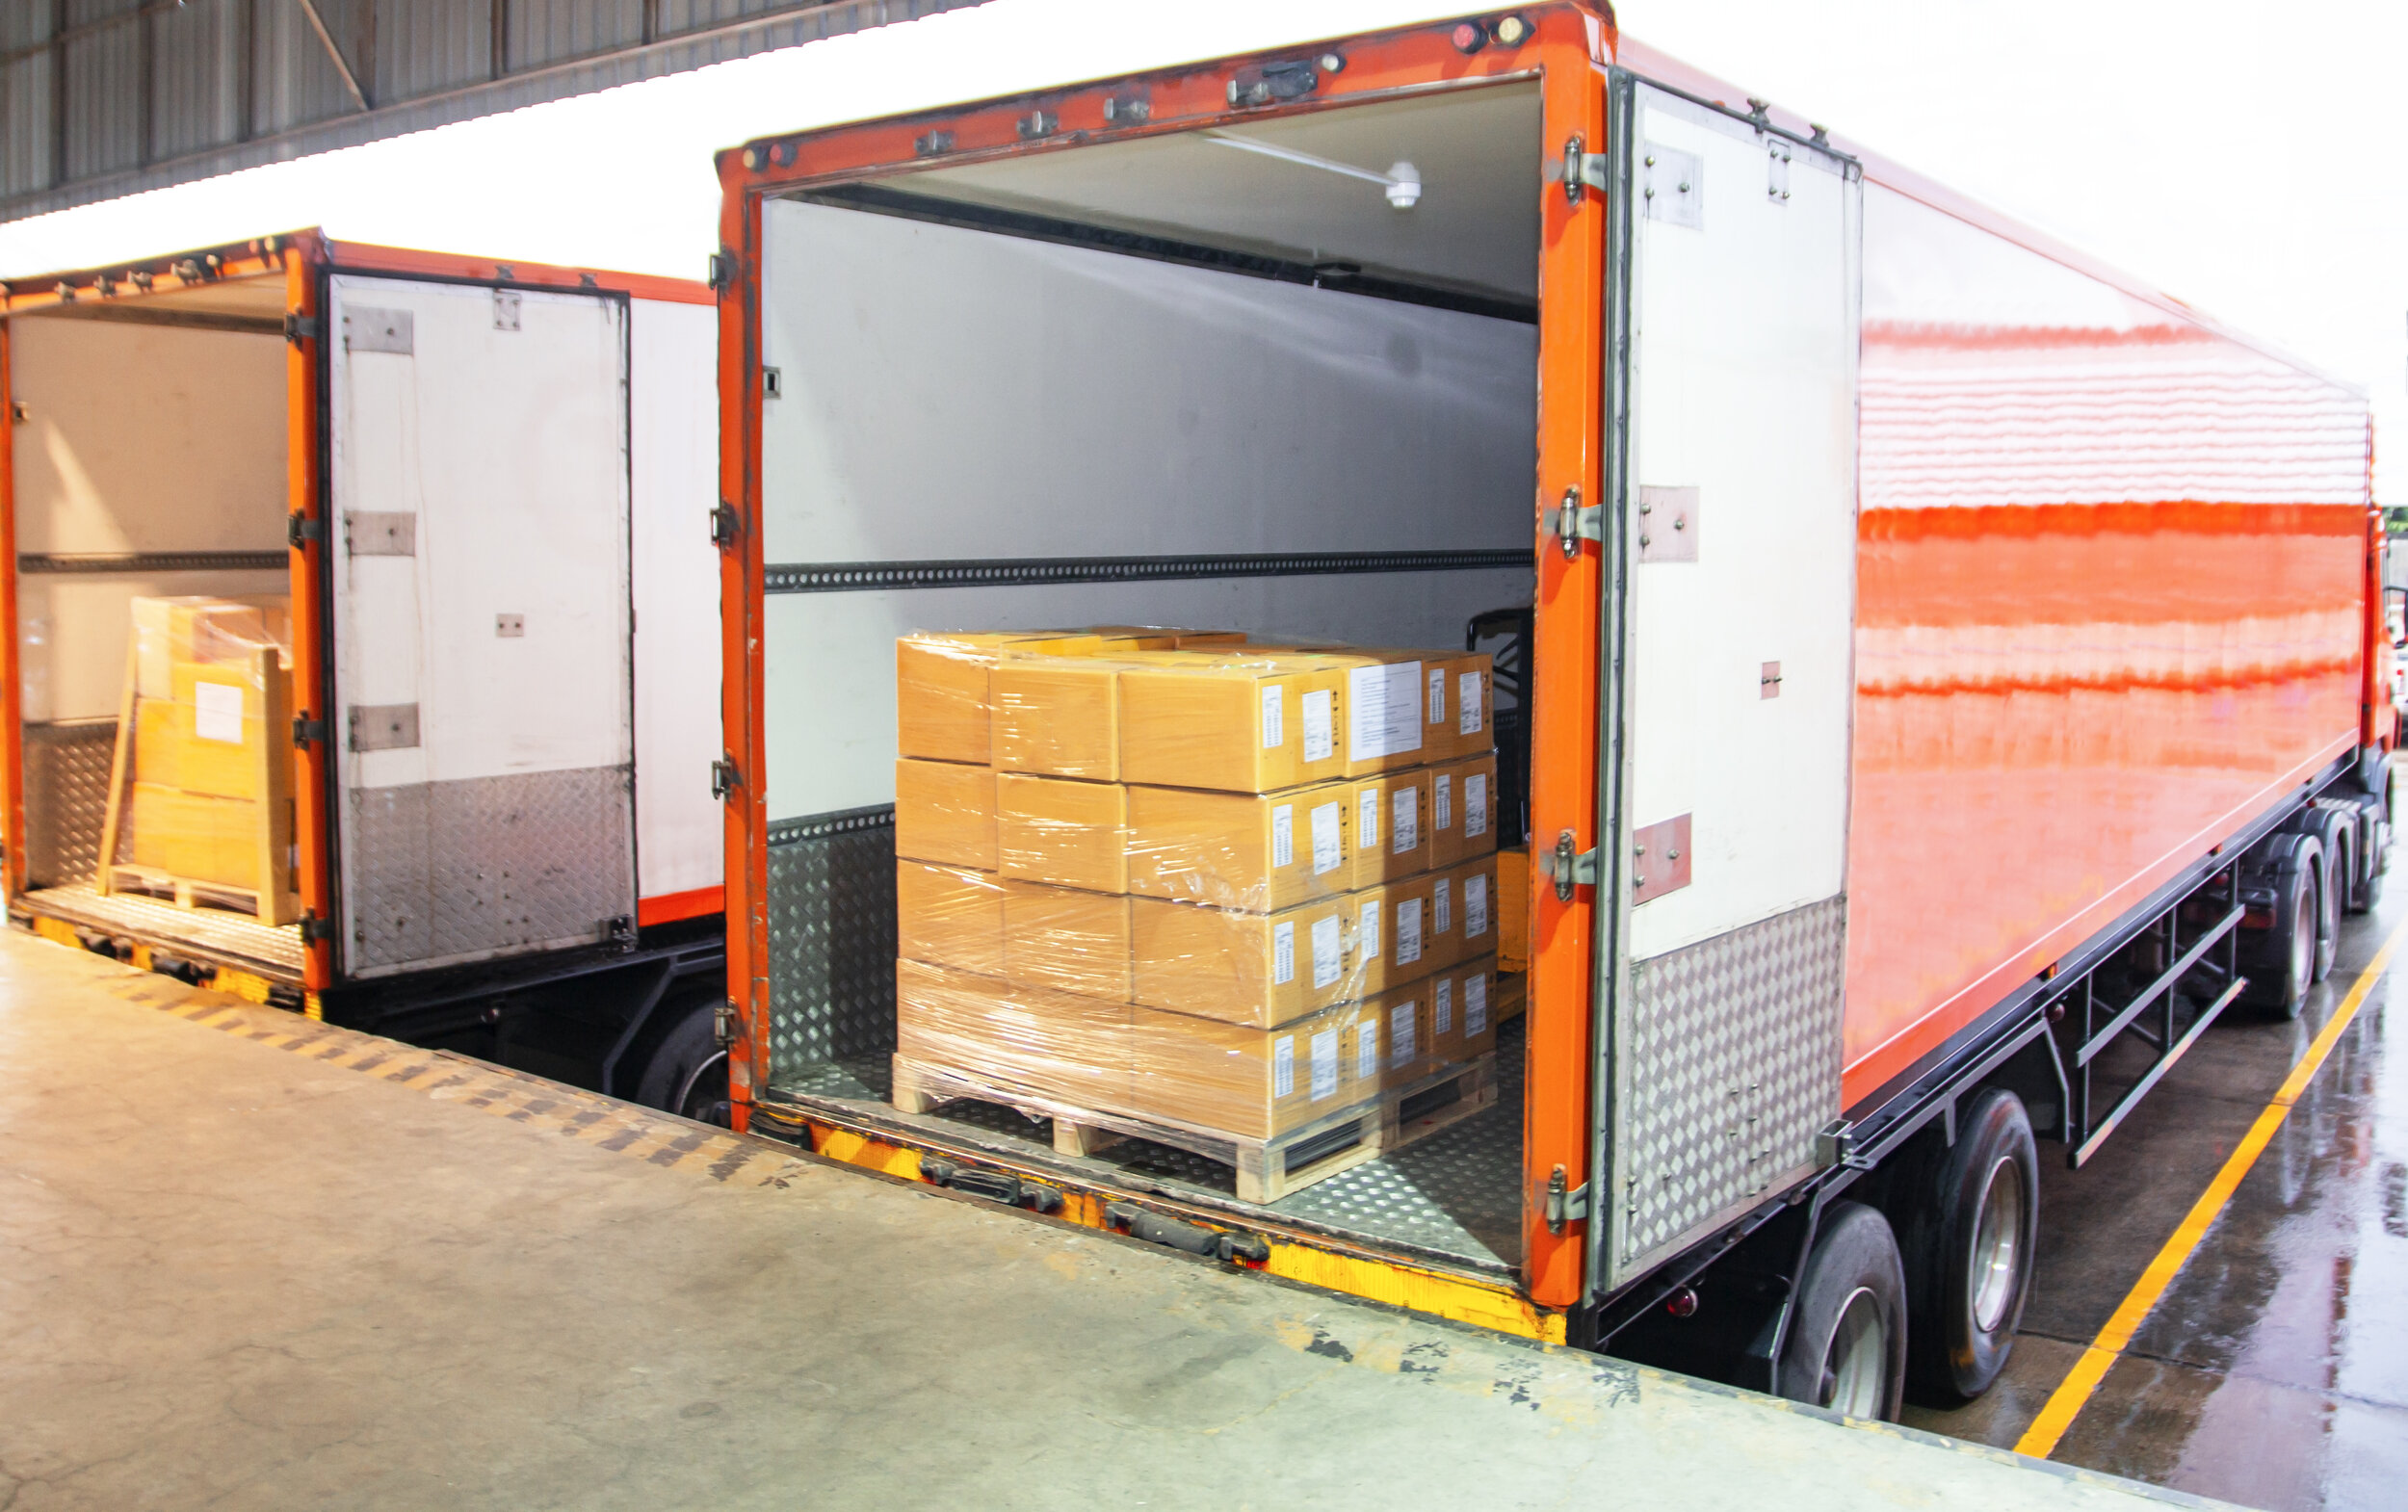 Logistics - Once production is finished, we will ship your product to your distribution warehouse. We handle all interactions with customs and other red tape, package your product to your specifications and then get it ready to ship. All you have to do is put your product on the shelves.